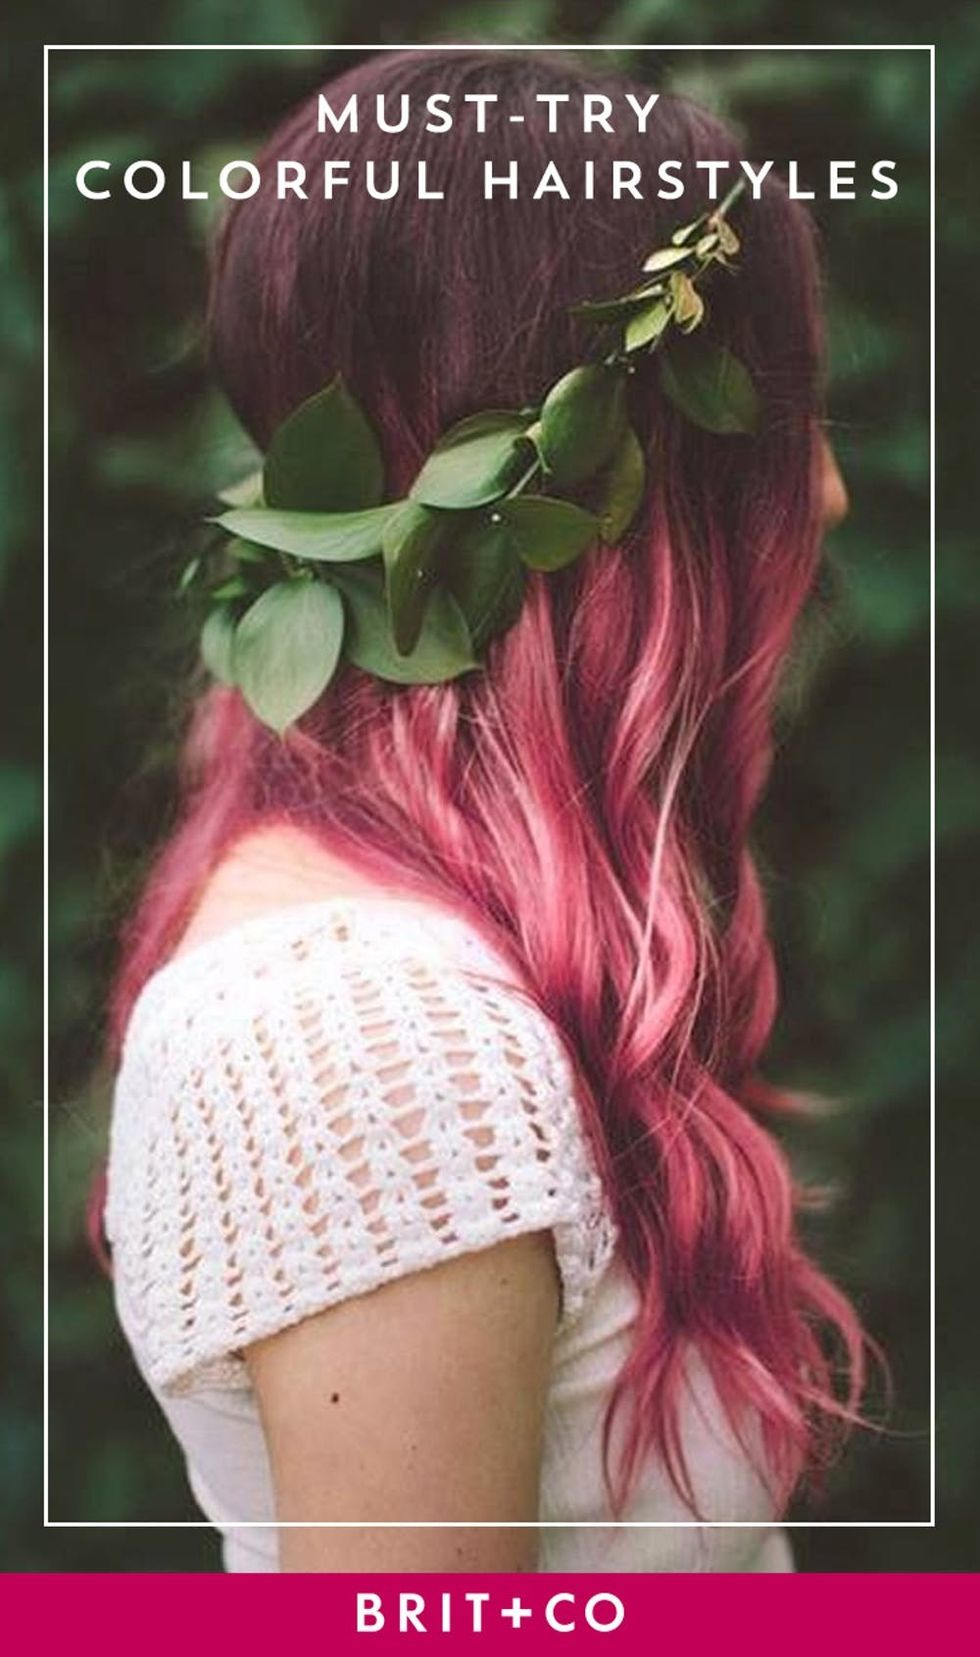 24 Colorful Hairstyles to Inspire Your Next Dye Job - Brit + Co